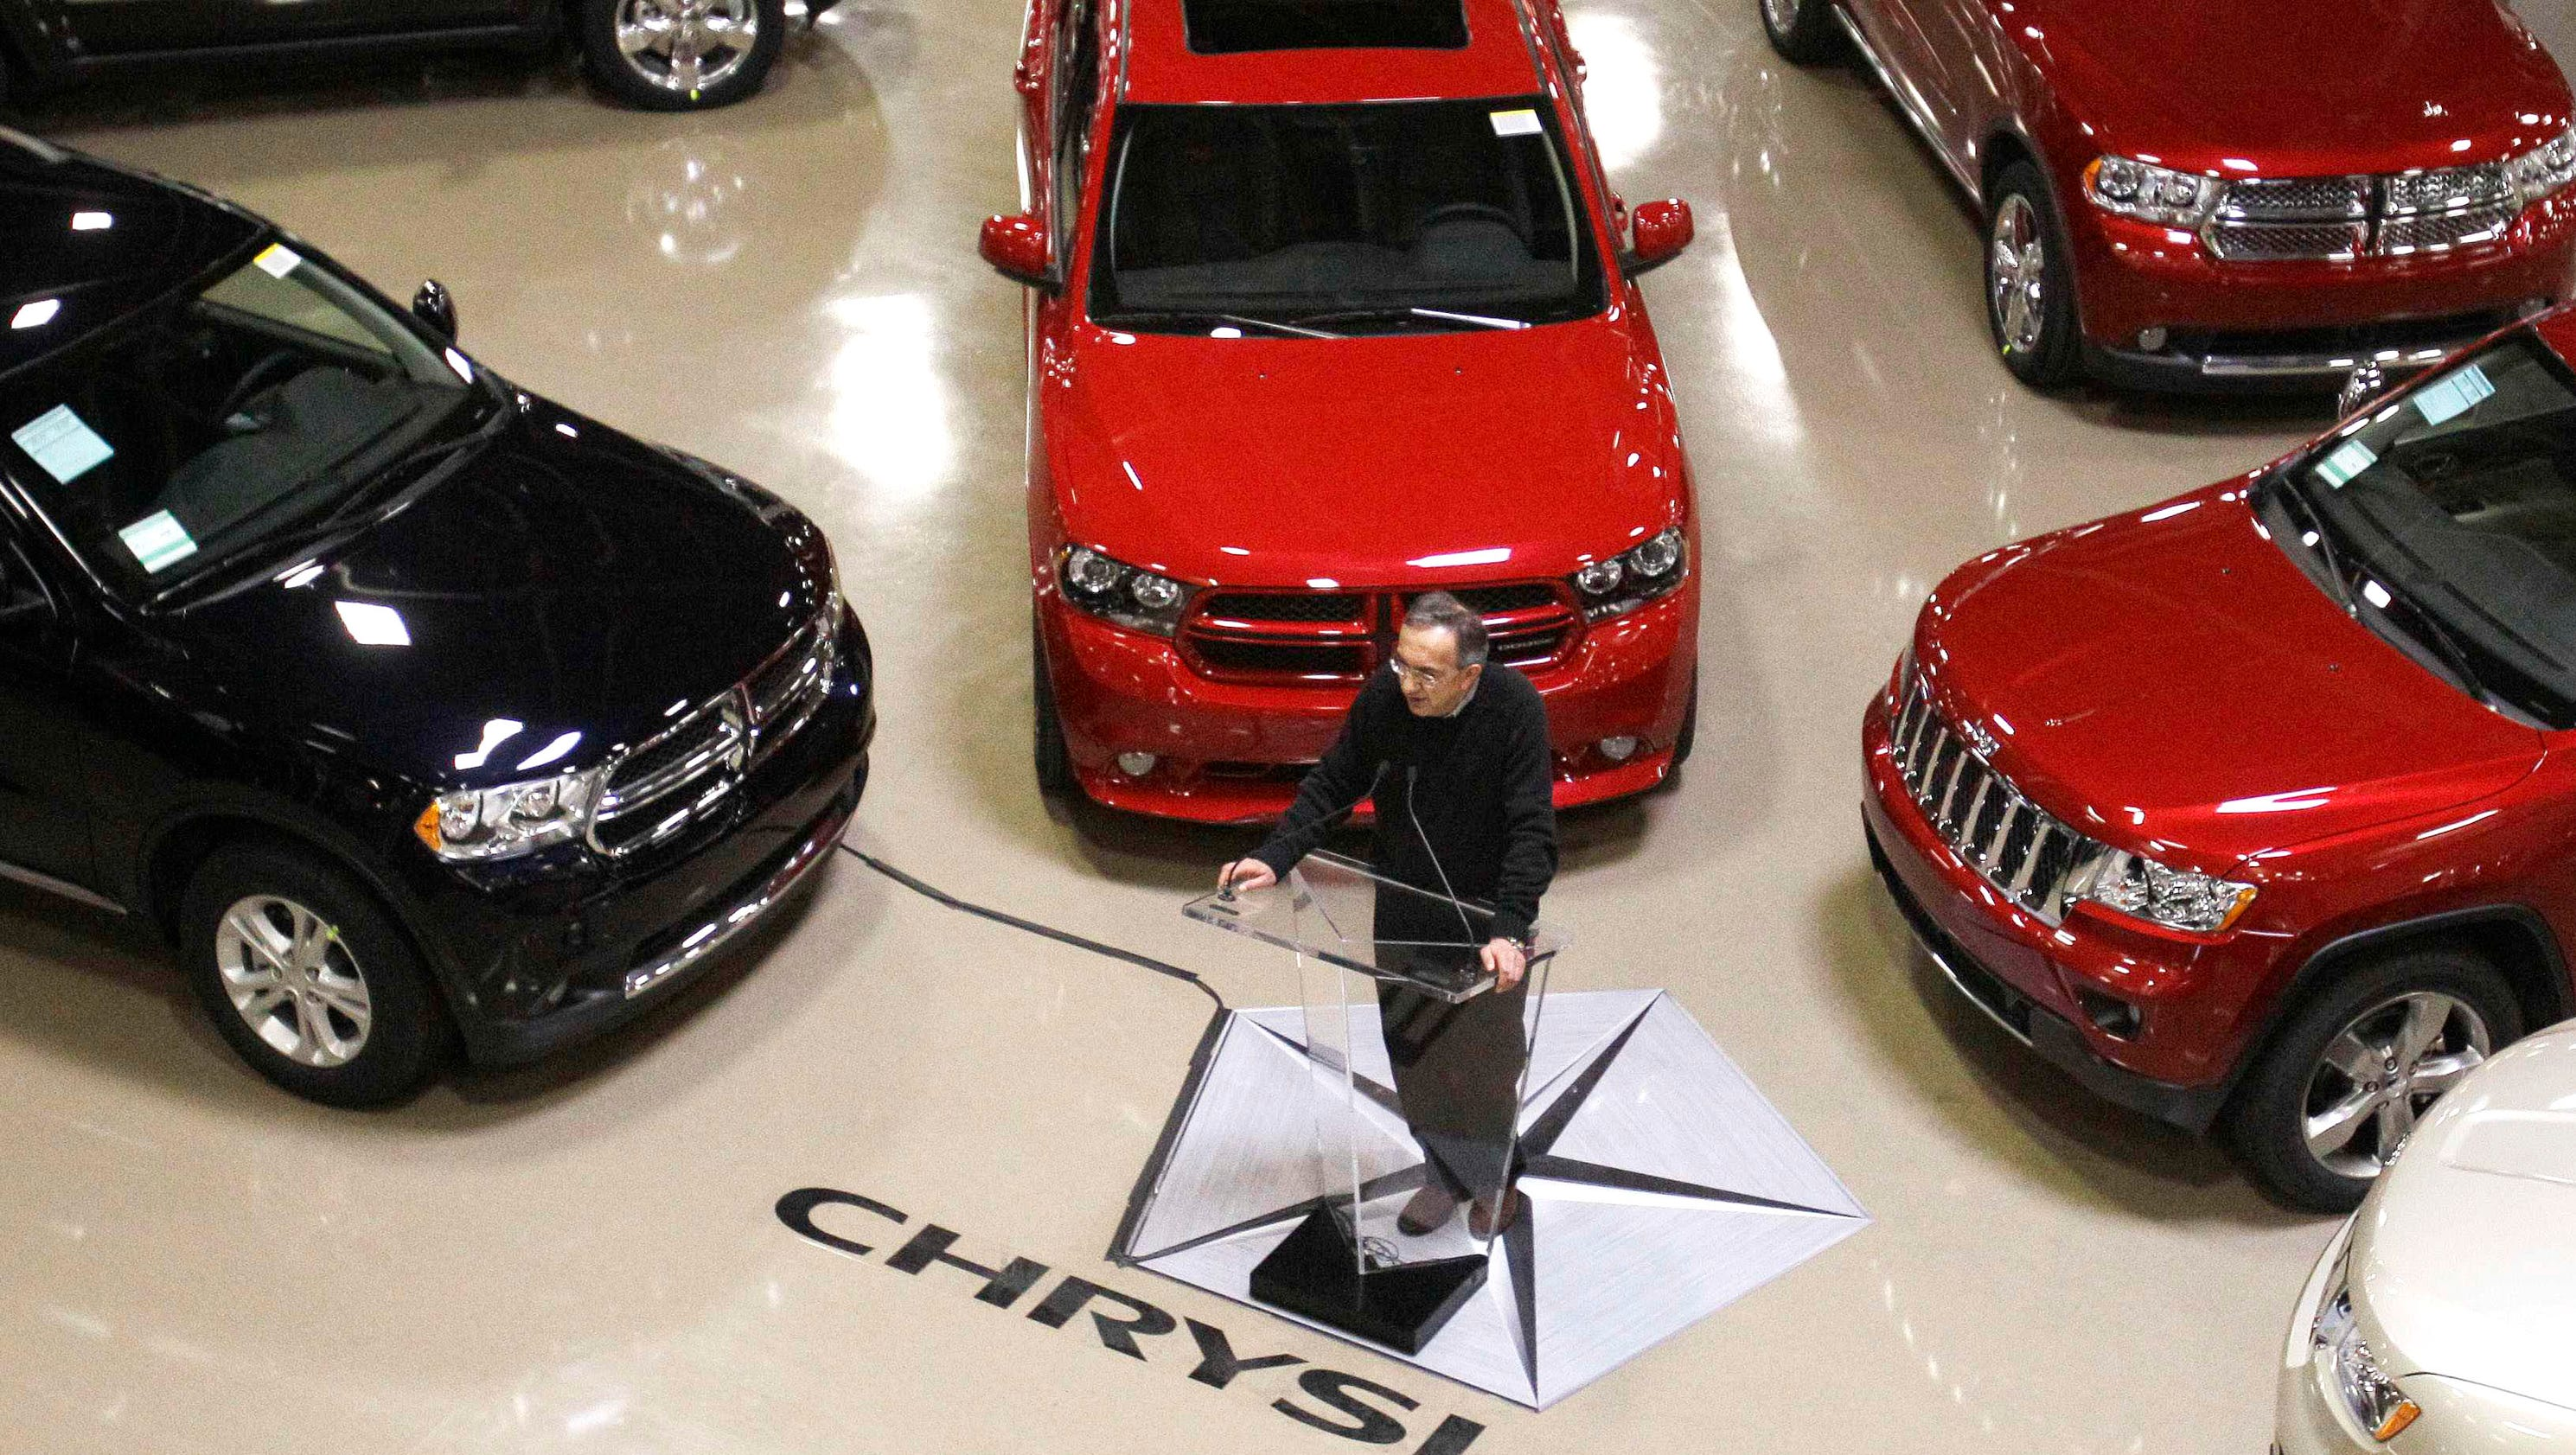 marchionne reshapes fiat chrysler for merger or sale. Black Bedroom Furniture Sets. Home Design Ideas